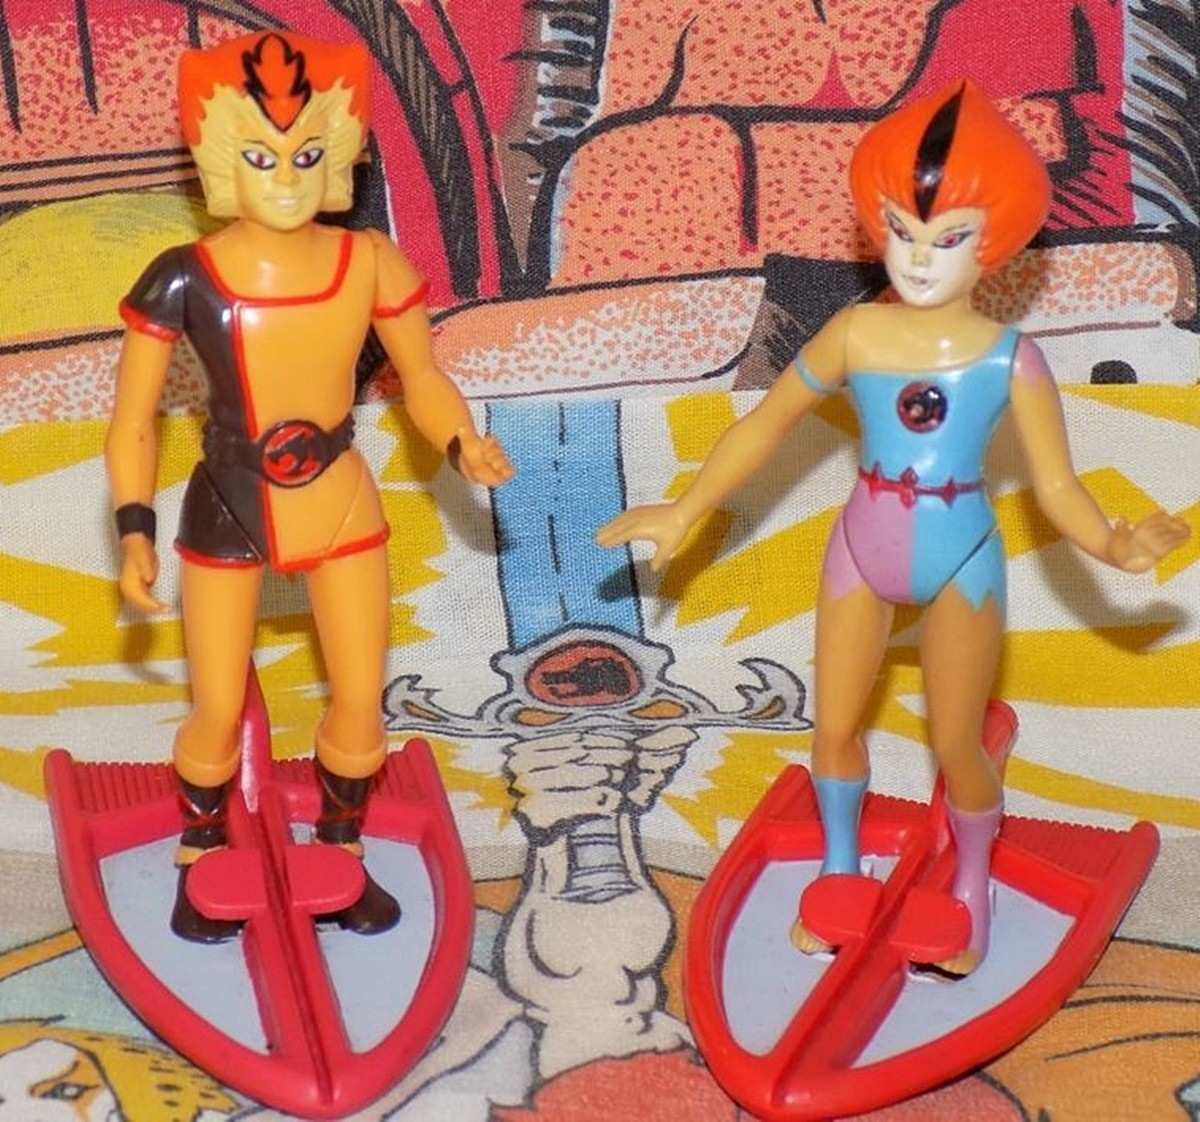 8 13 How Many Of These 16 ThunderCats Toys Did You Own?